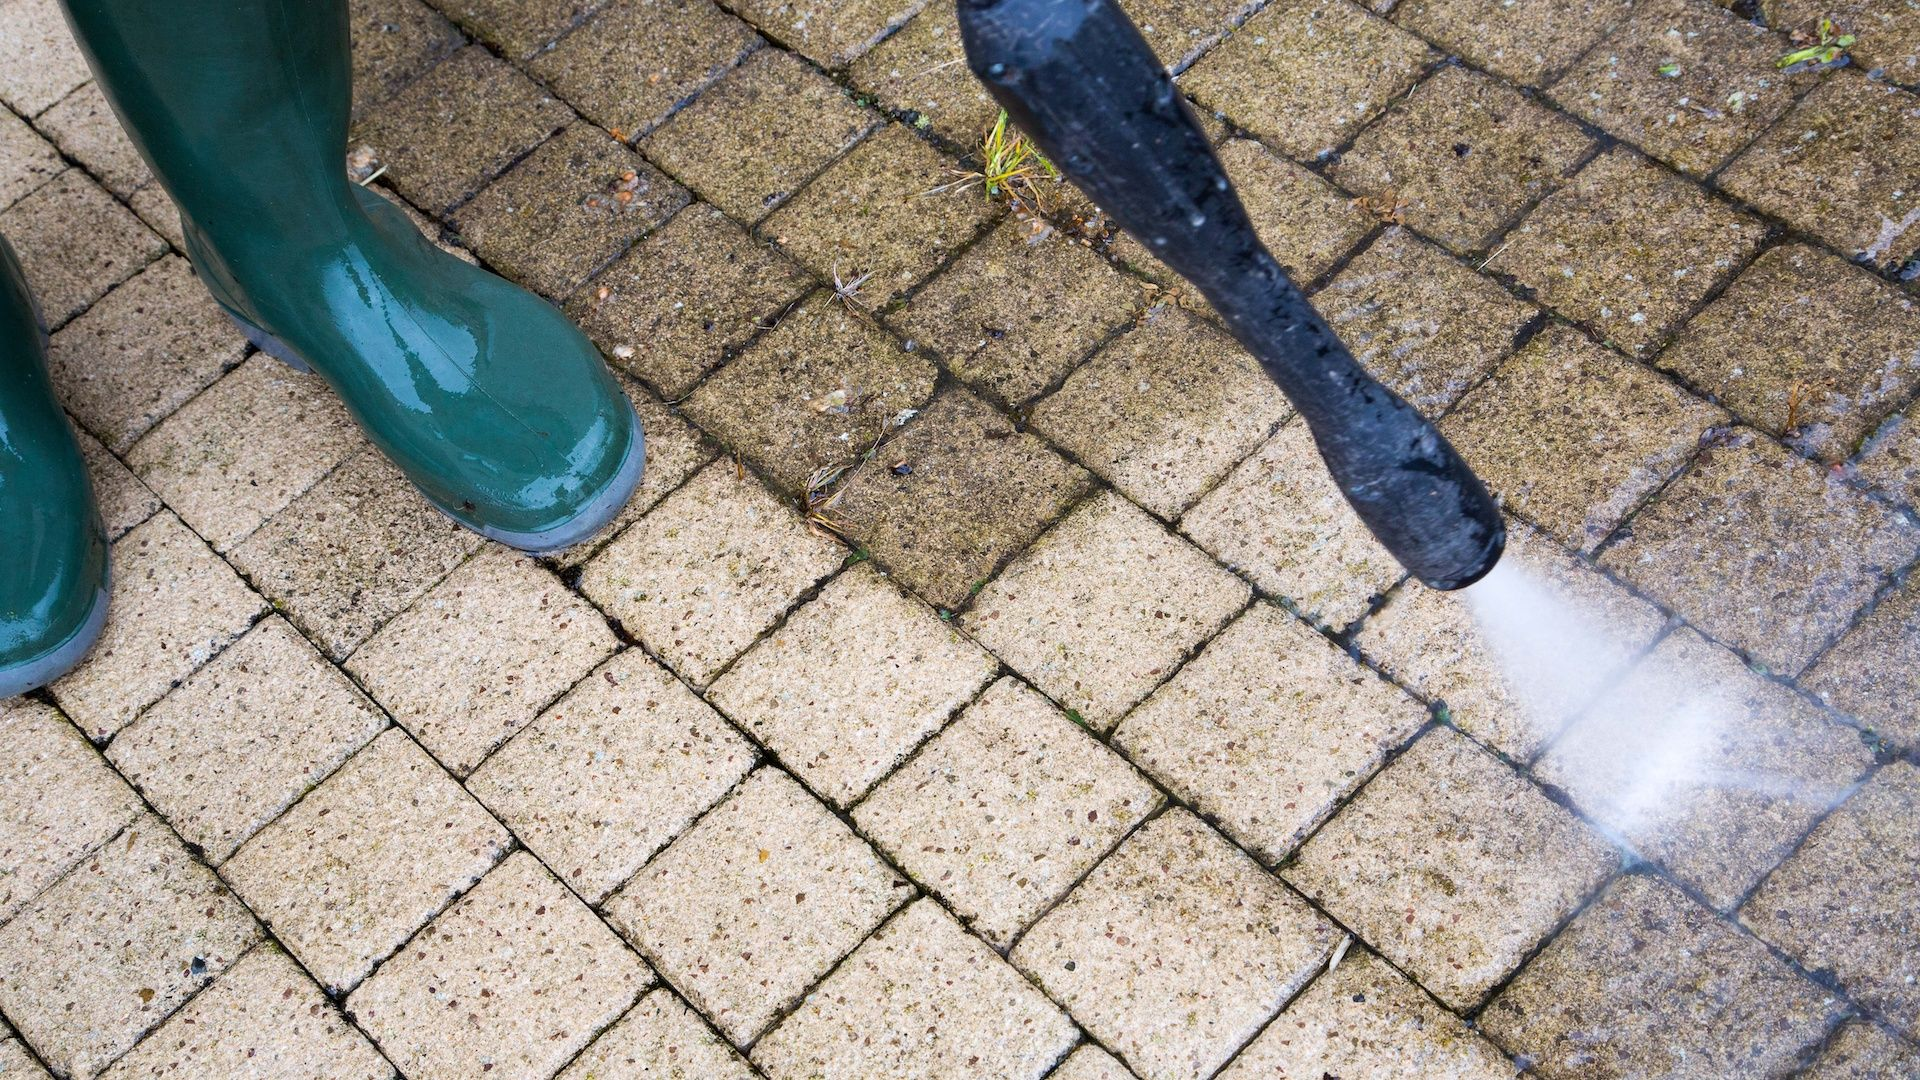 Pressure Washing Services in Fayetteville AR   Pressure washing services, Pressure  washing, Pressure washer